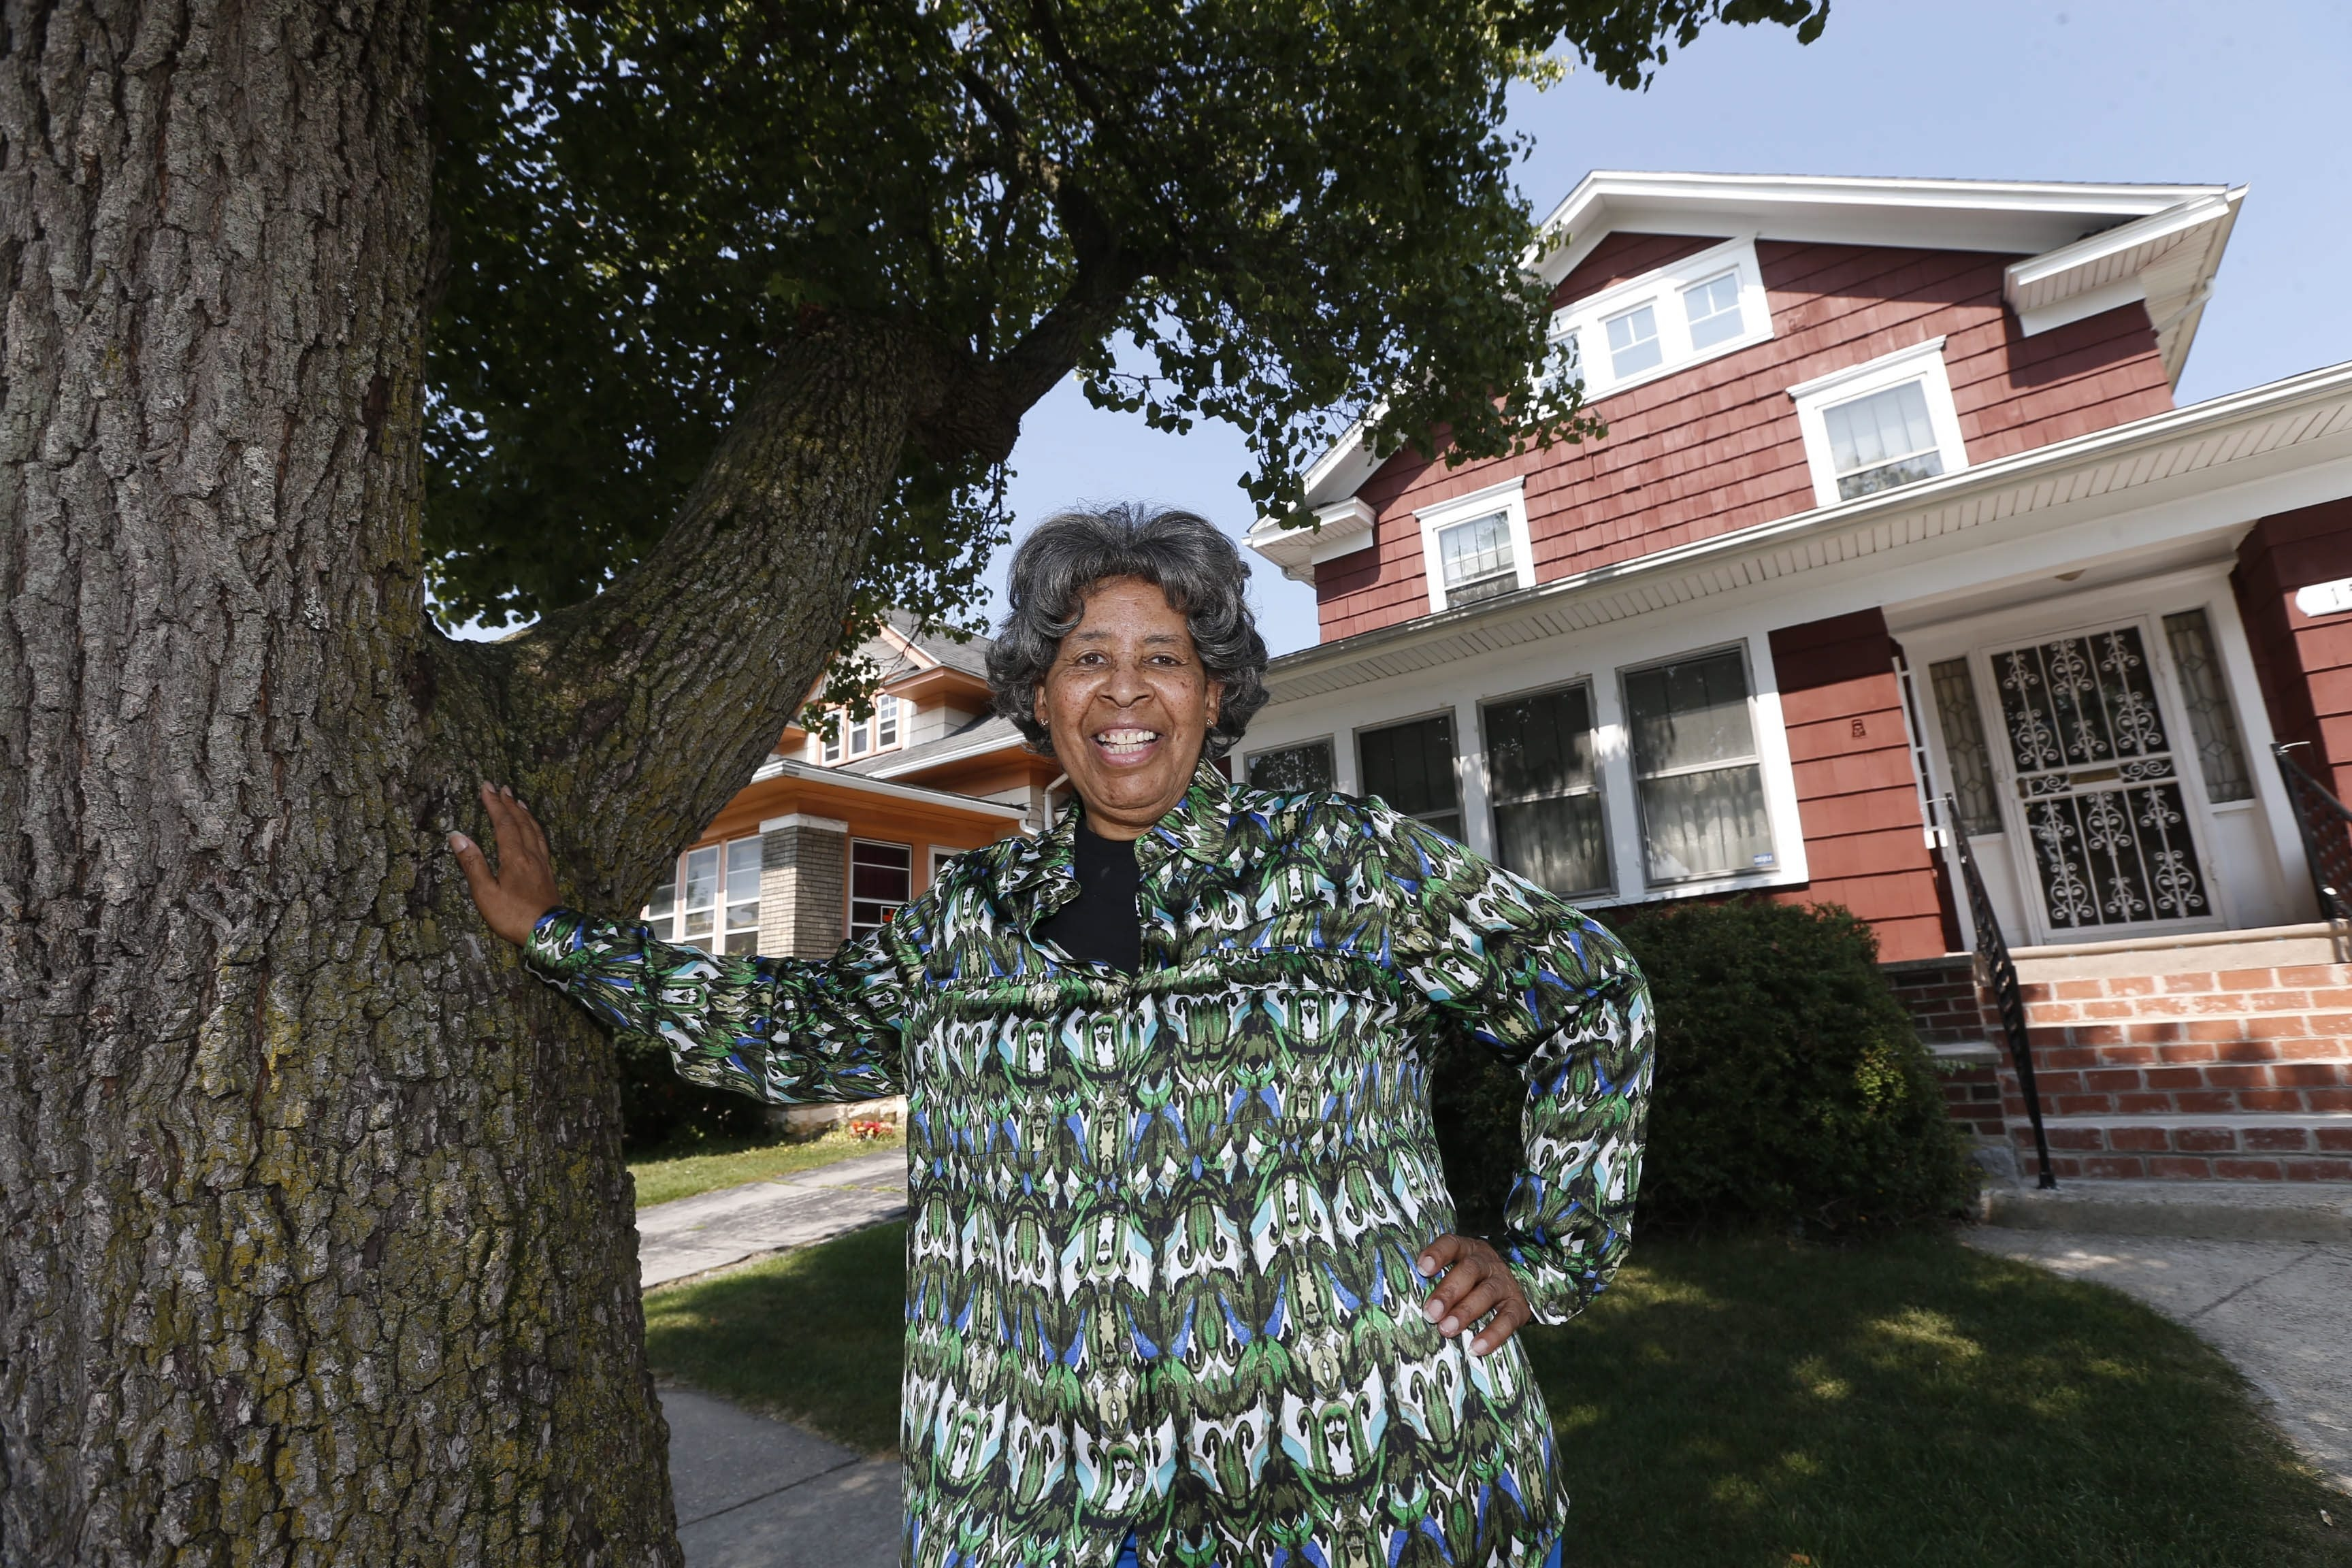 Marion Mayfield bought her Hamlin Road home in 1967, when she was 24, and has lived there ever since.